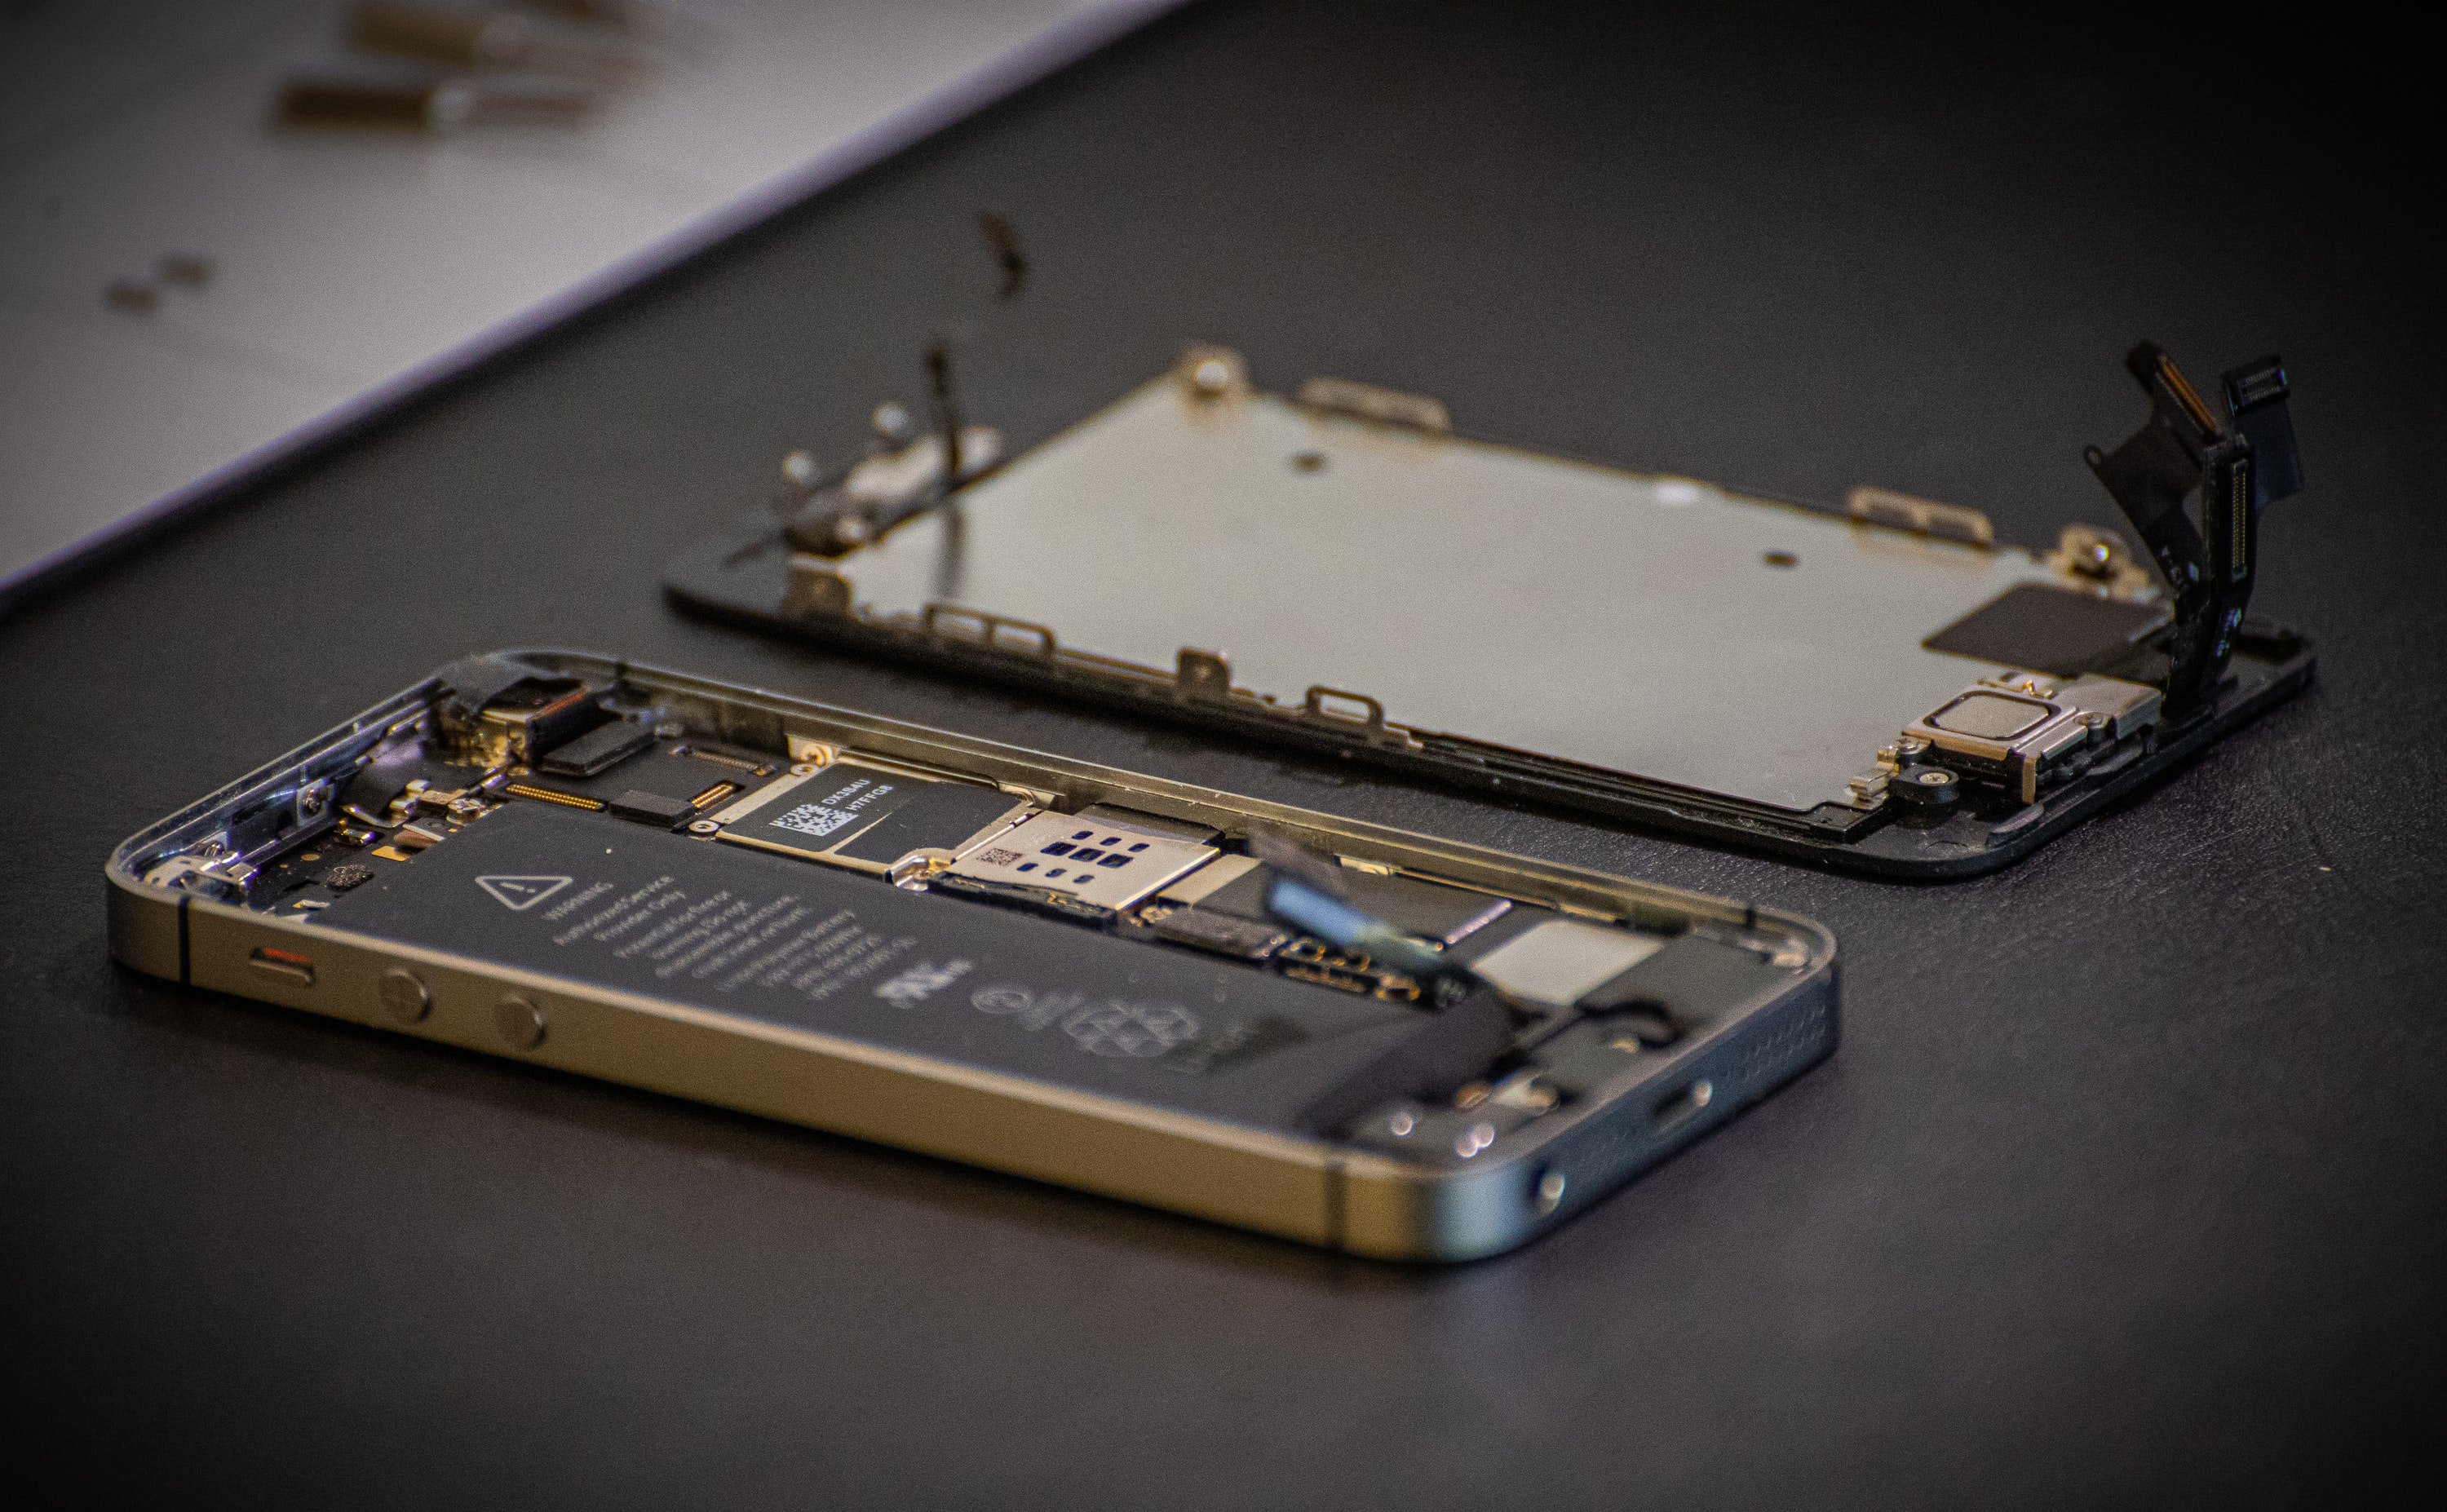 An iPhone under repair.